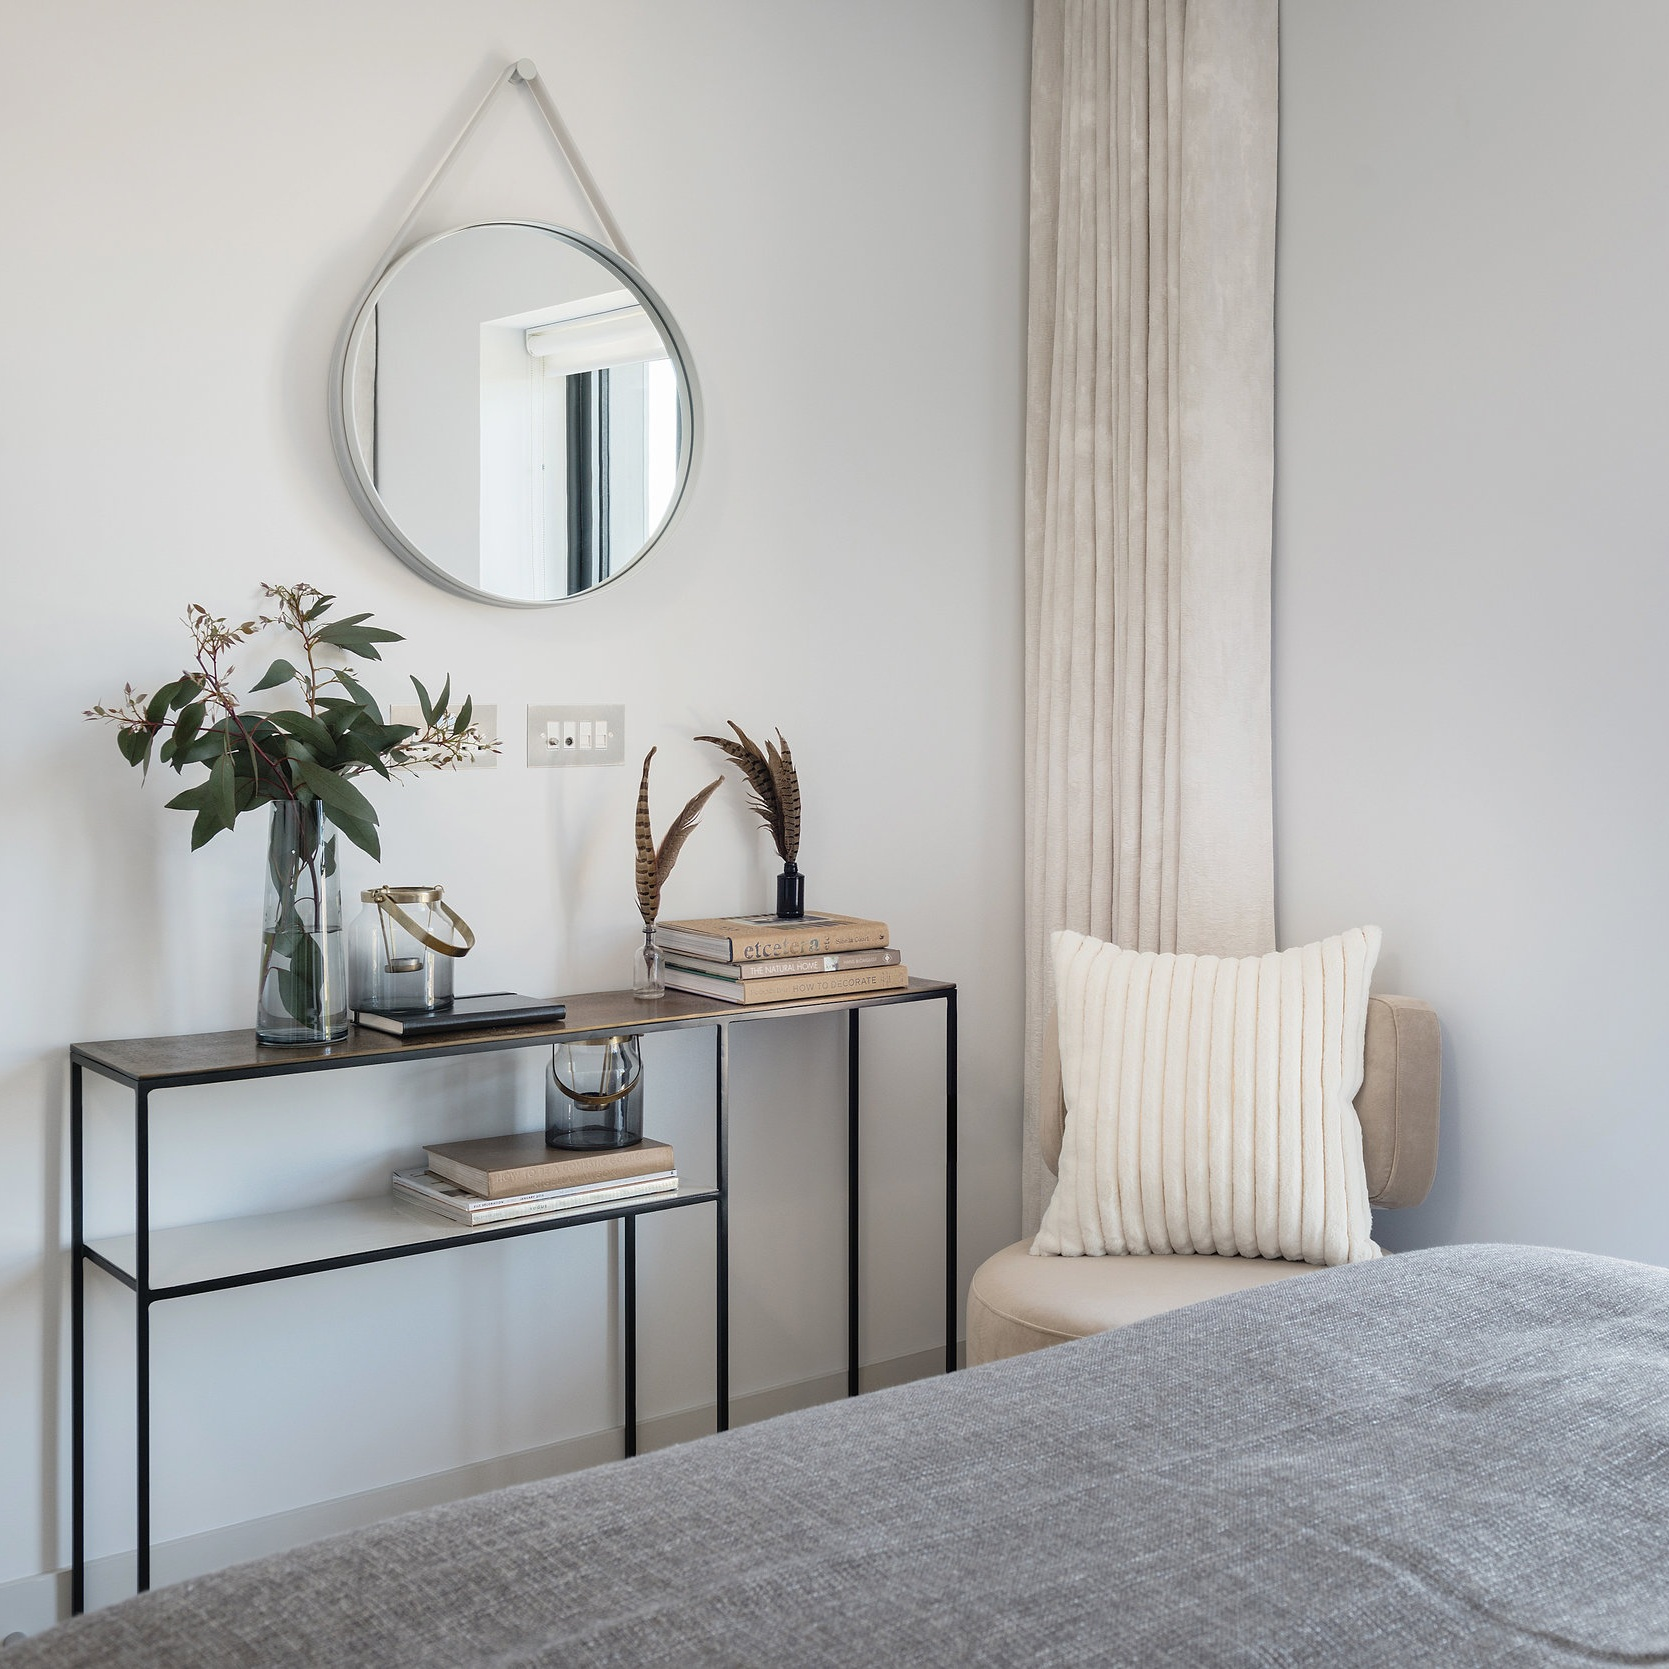 White Walls - Opt for them white walls. It may seem obvious but using light and neutral coloured paint really does help when trying to brighten up a dark room, not so obvious may be the choice to us Matte paint rather than glossy paint. Glossy paint will often create glare instead of reflecting light around your room, on the other hand Matte reflects light around the room, creating a brighter and warmer feel.